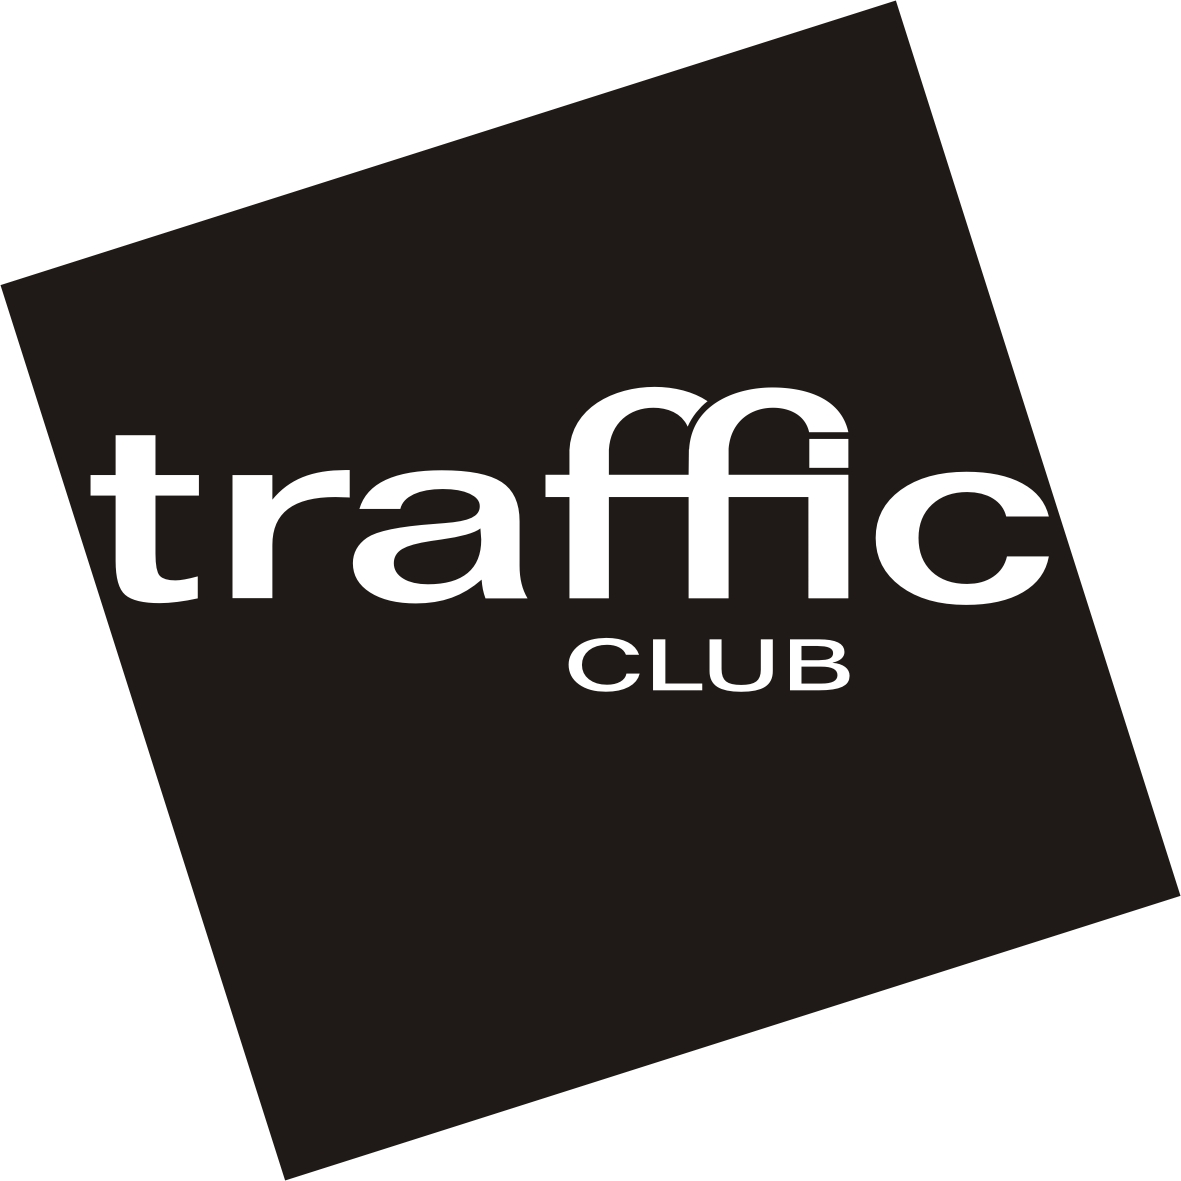 1_traffic-logo kwadrat a